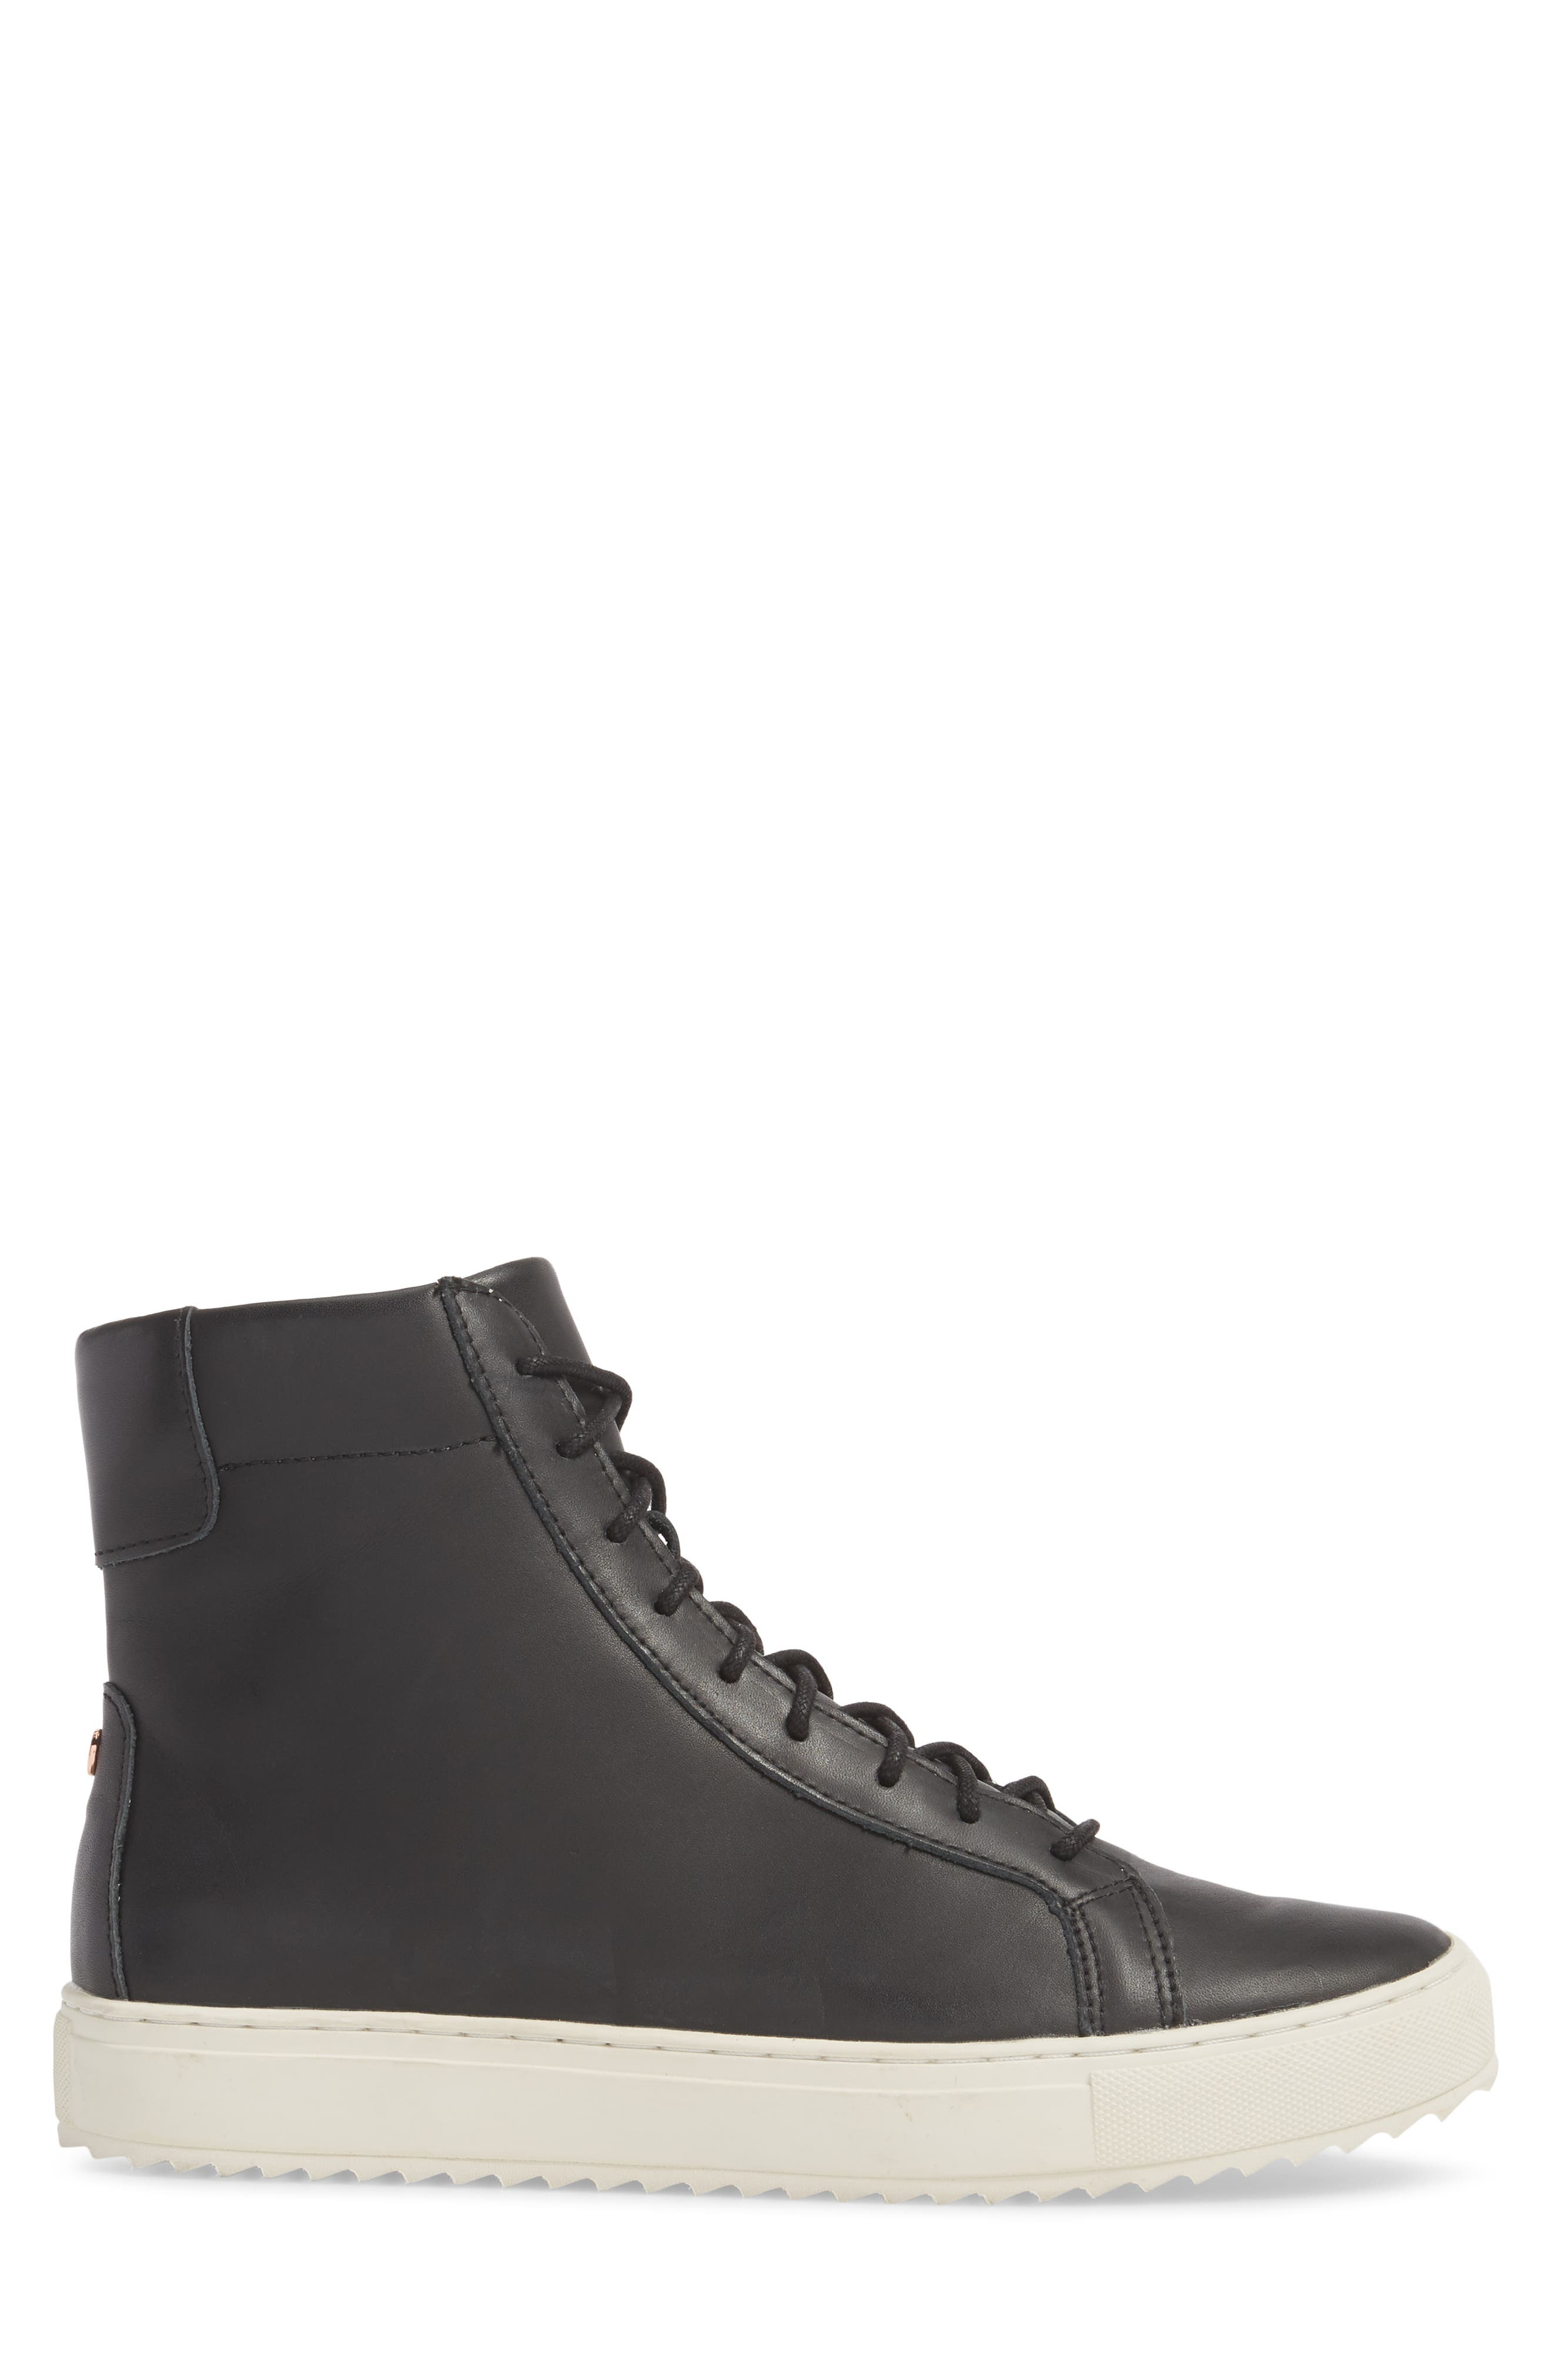 Logan Water Resistant High Top Sneaker,                             Alternate thumbnail 3, color,                             Kettle Leather